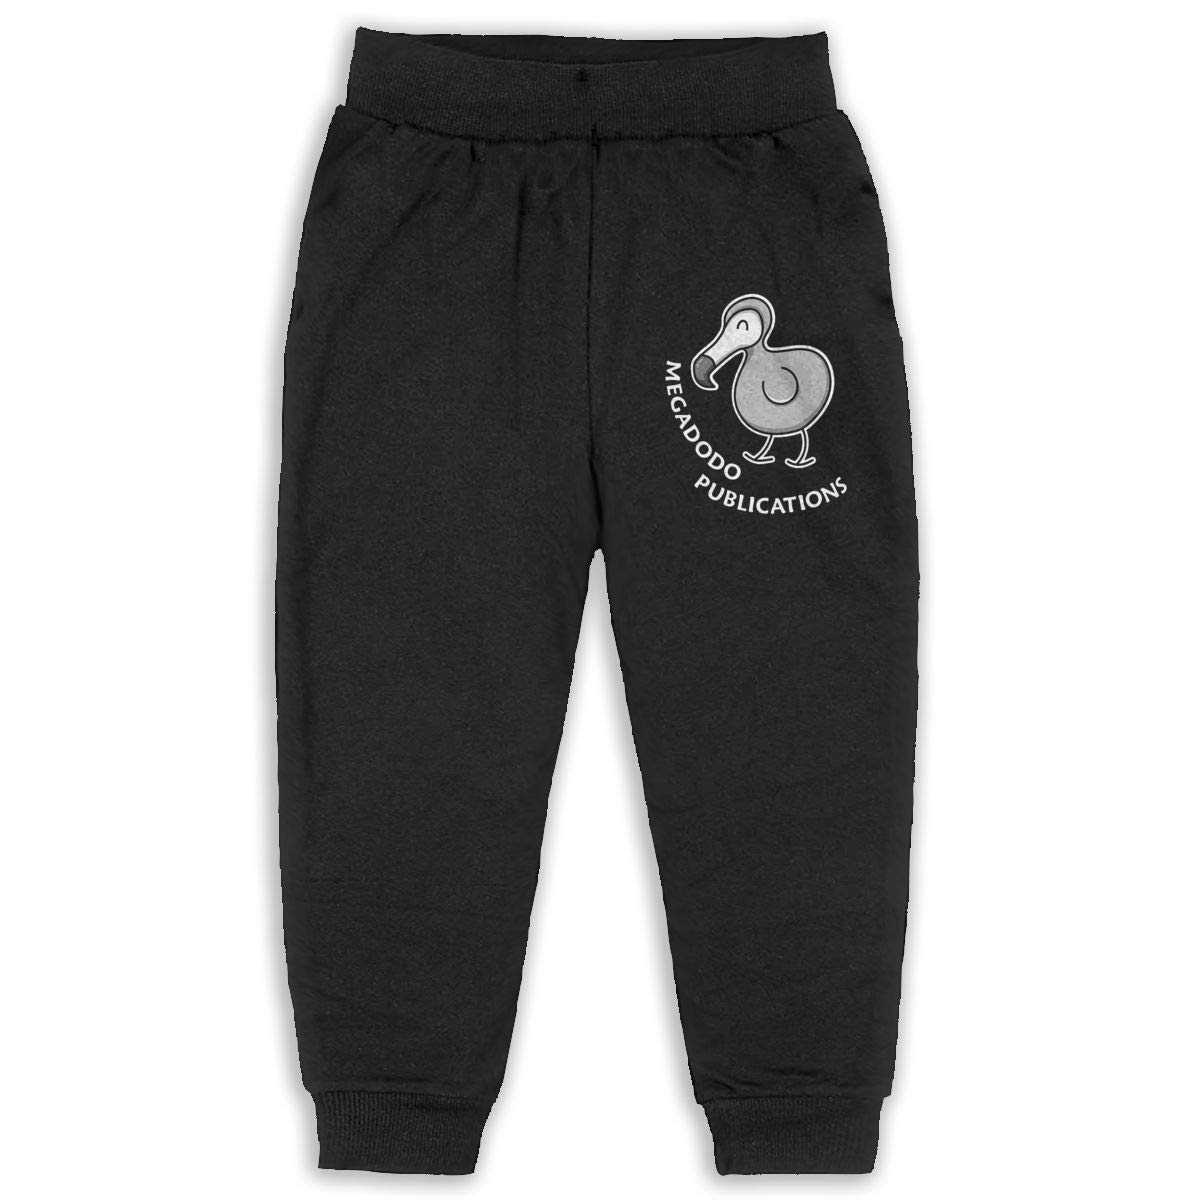 Laoyaotequ Megadodo Publications Kids Cotton Sweatpants,Jogger Long Jersey Sweatpants